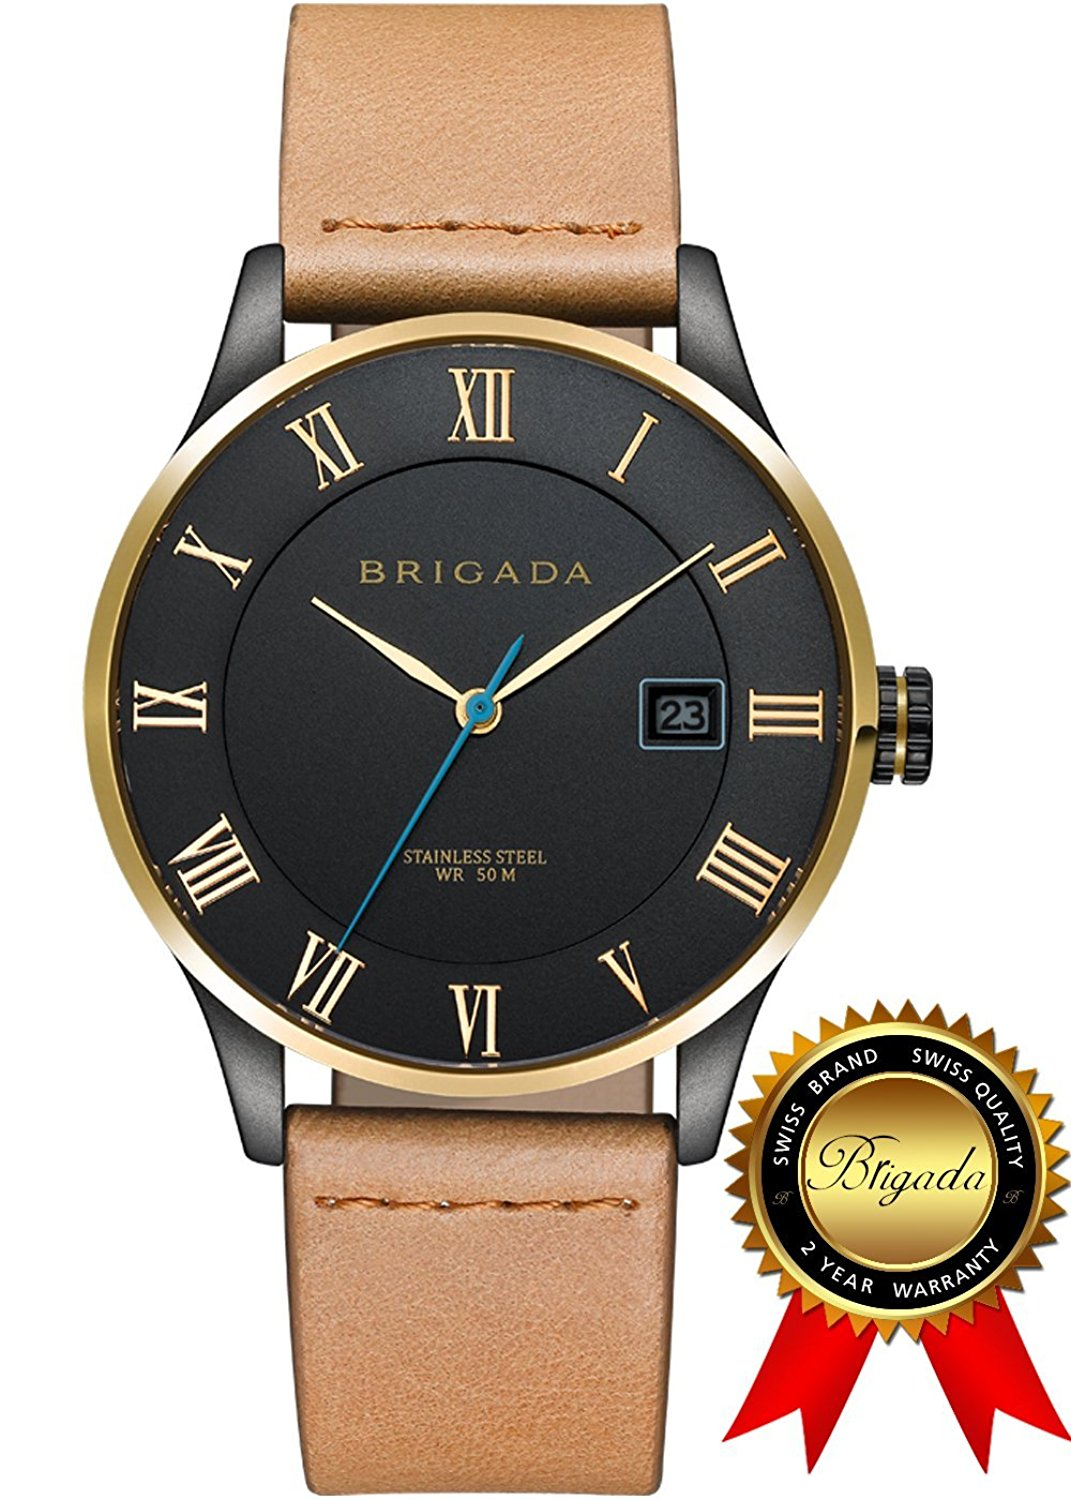 casual watches gift mens lover black or for brigada yourself great friends cool watch swiss men families s nice products fashion business